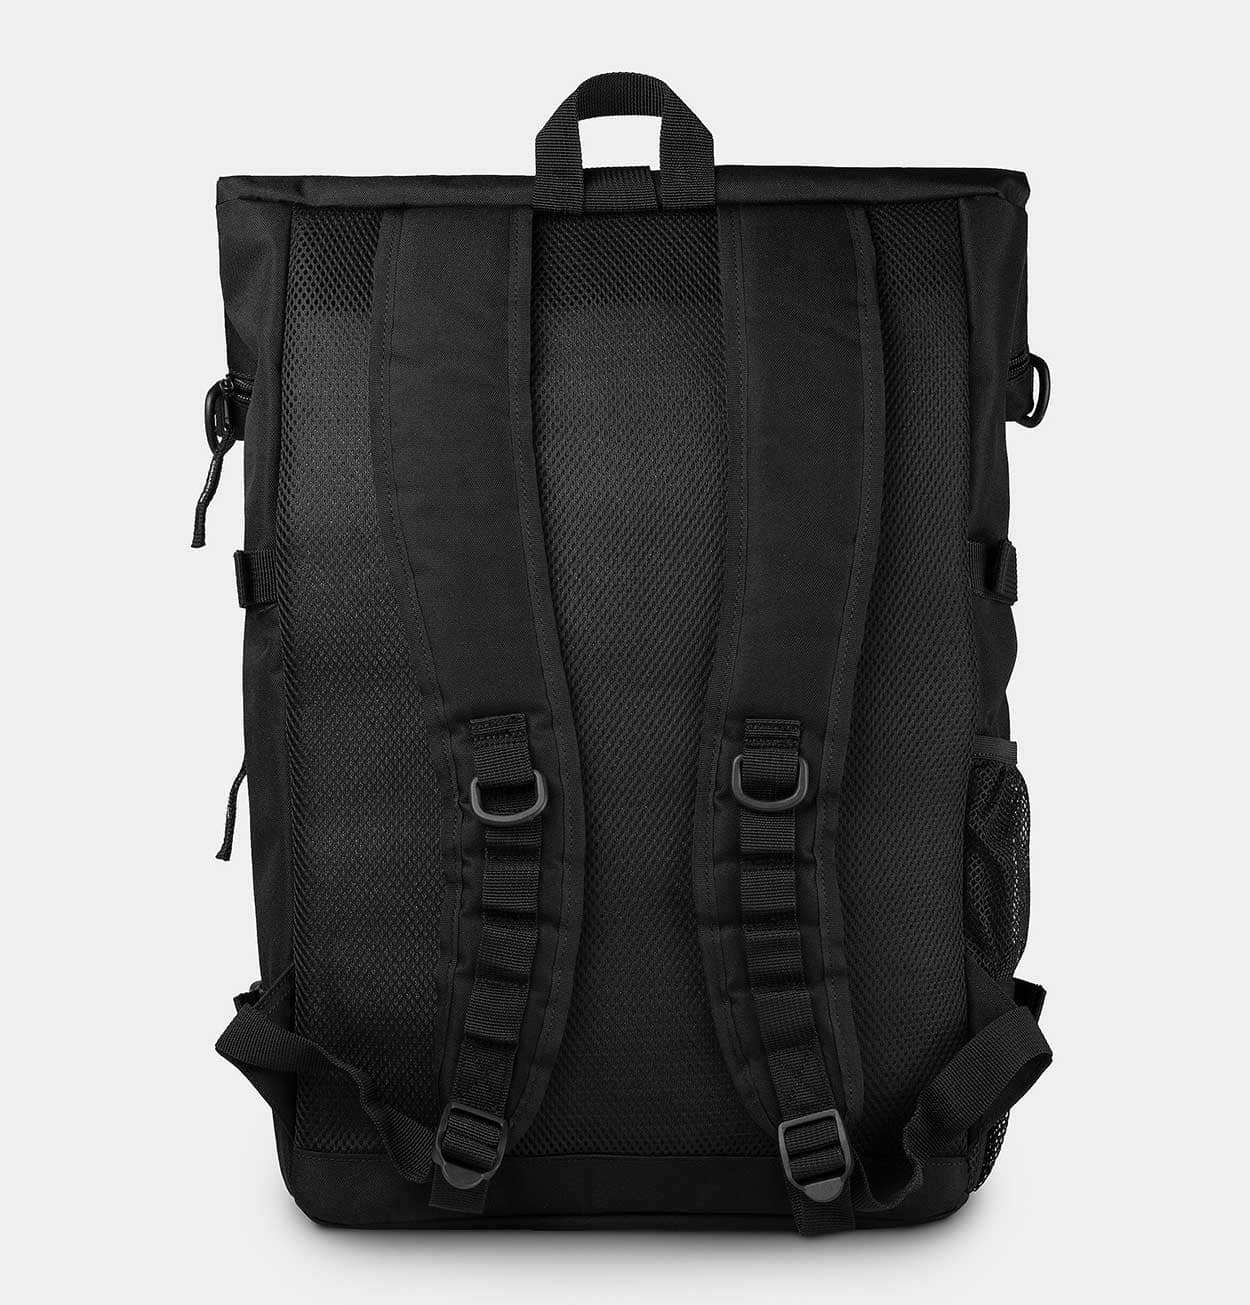 Carhartt WIP Philis Backpack – Black - HUH. Store